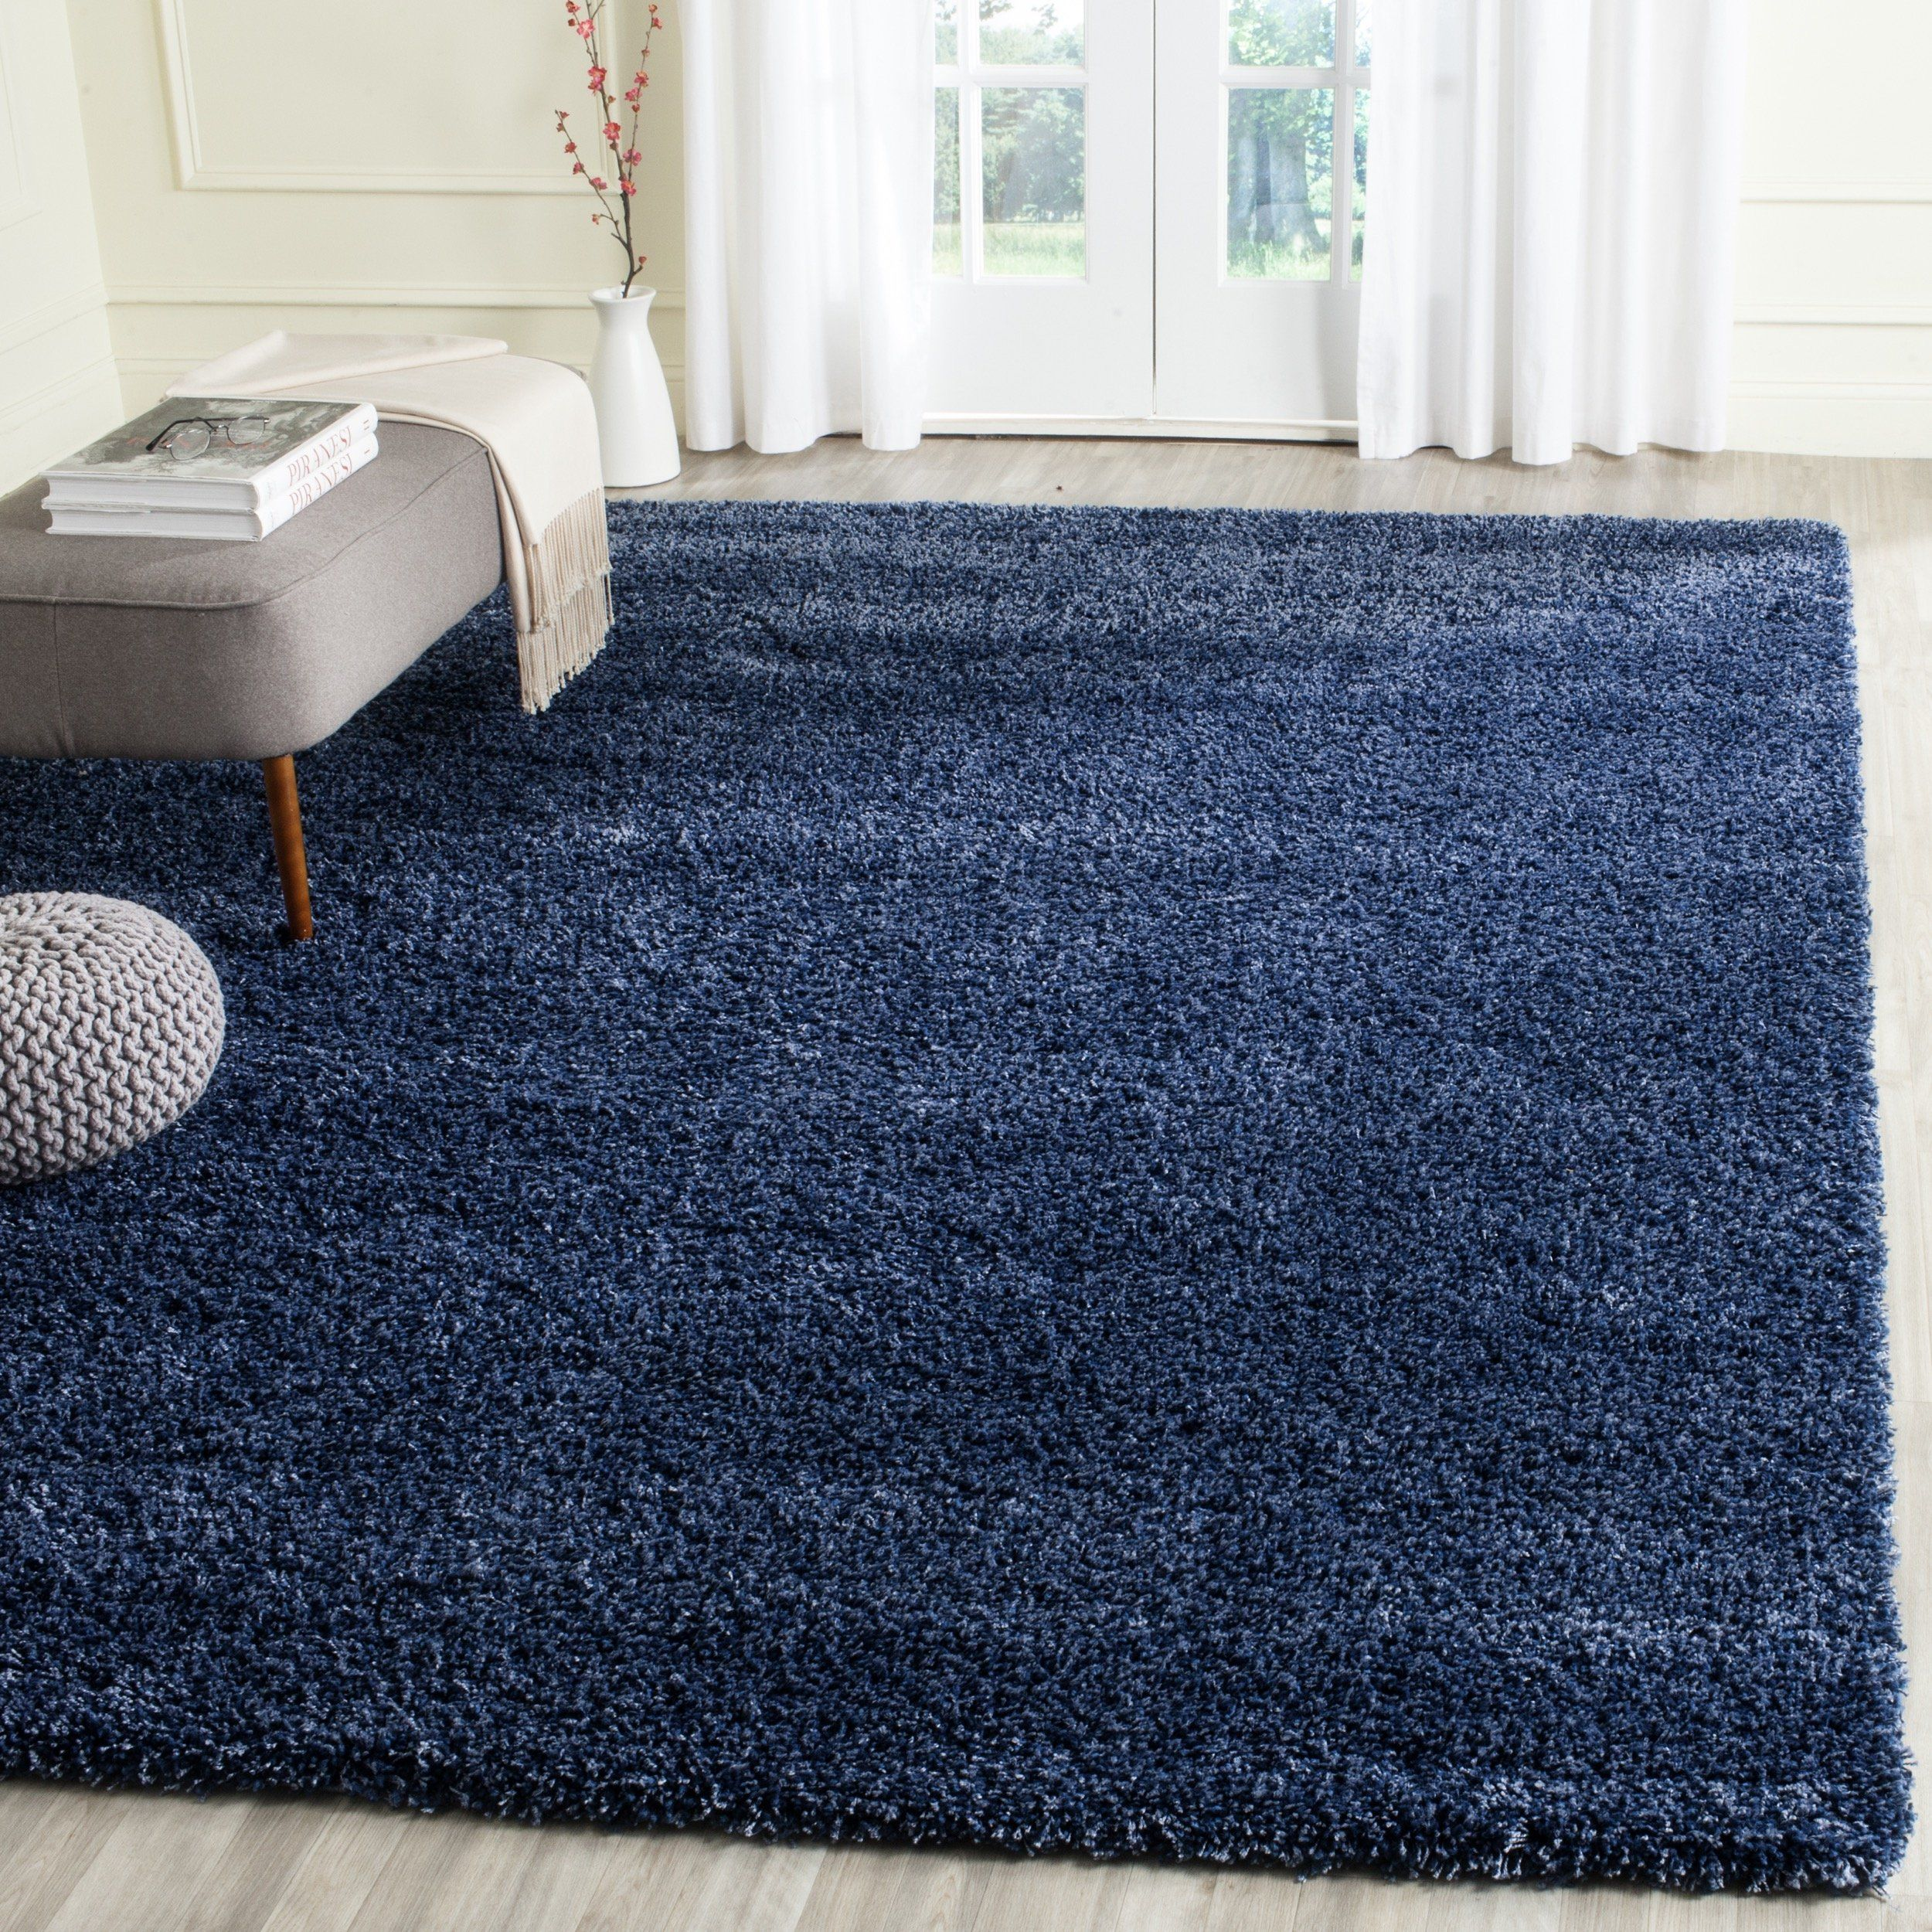 Safavieh California Shag Collection Sg151 7070 Navy Shag Area Rug